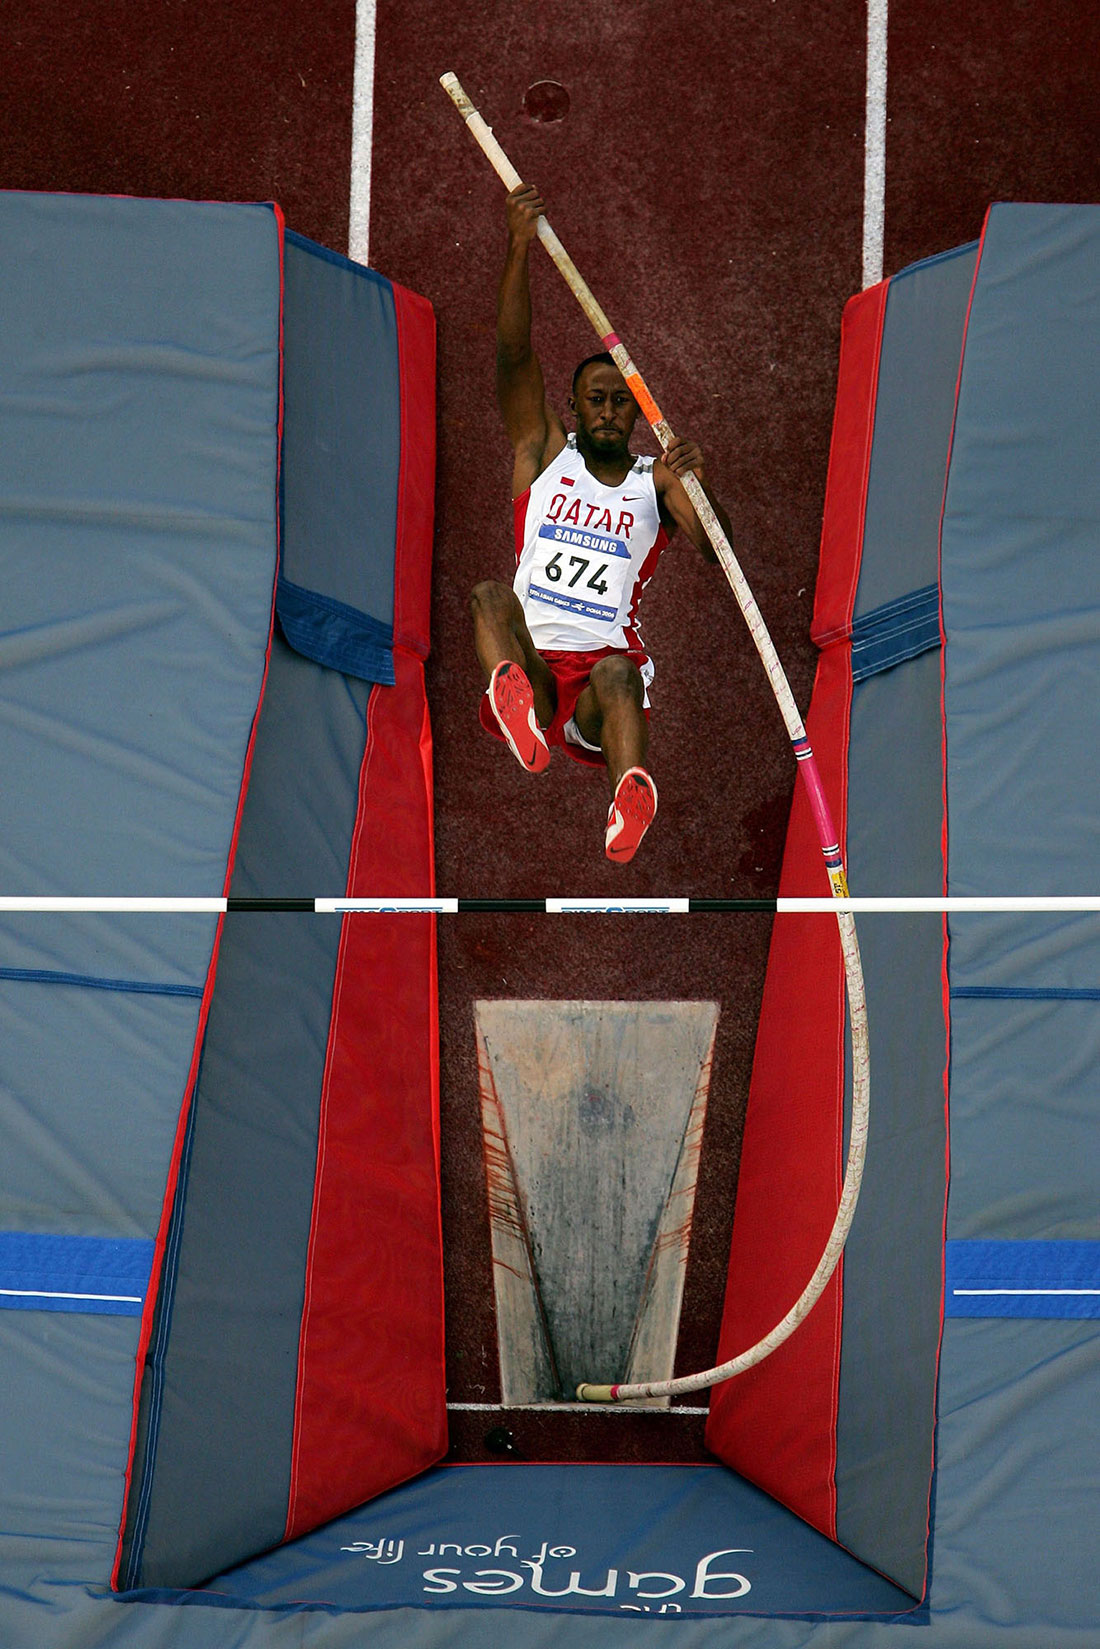 Abdulla Ghanim Saeed of Qatar, pole vault final, Asian Games, Doha, Qatar, December 2006